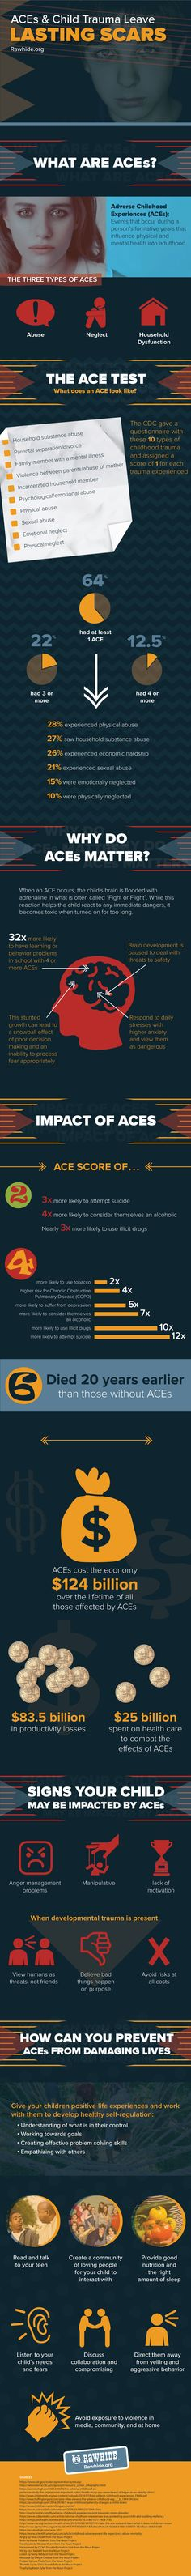 Adverse Childhood Experiences or ACEs leave lasting scars on children. Find out more in our #infographic